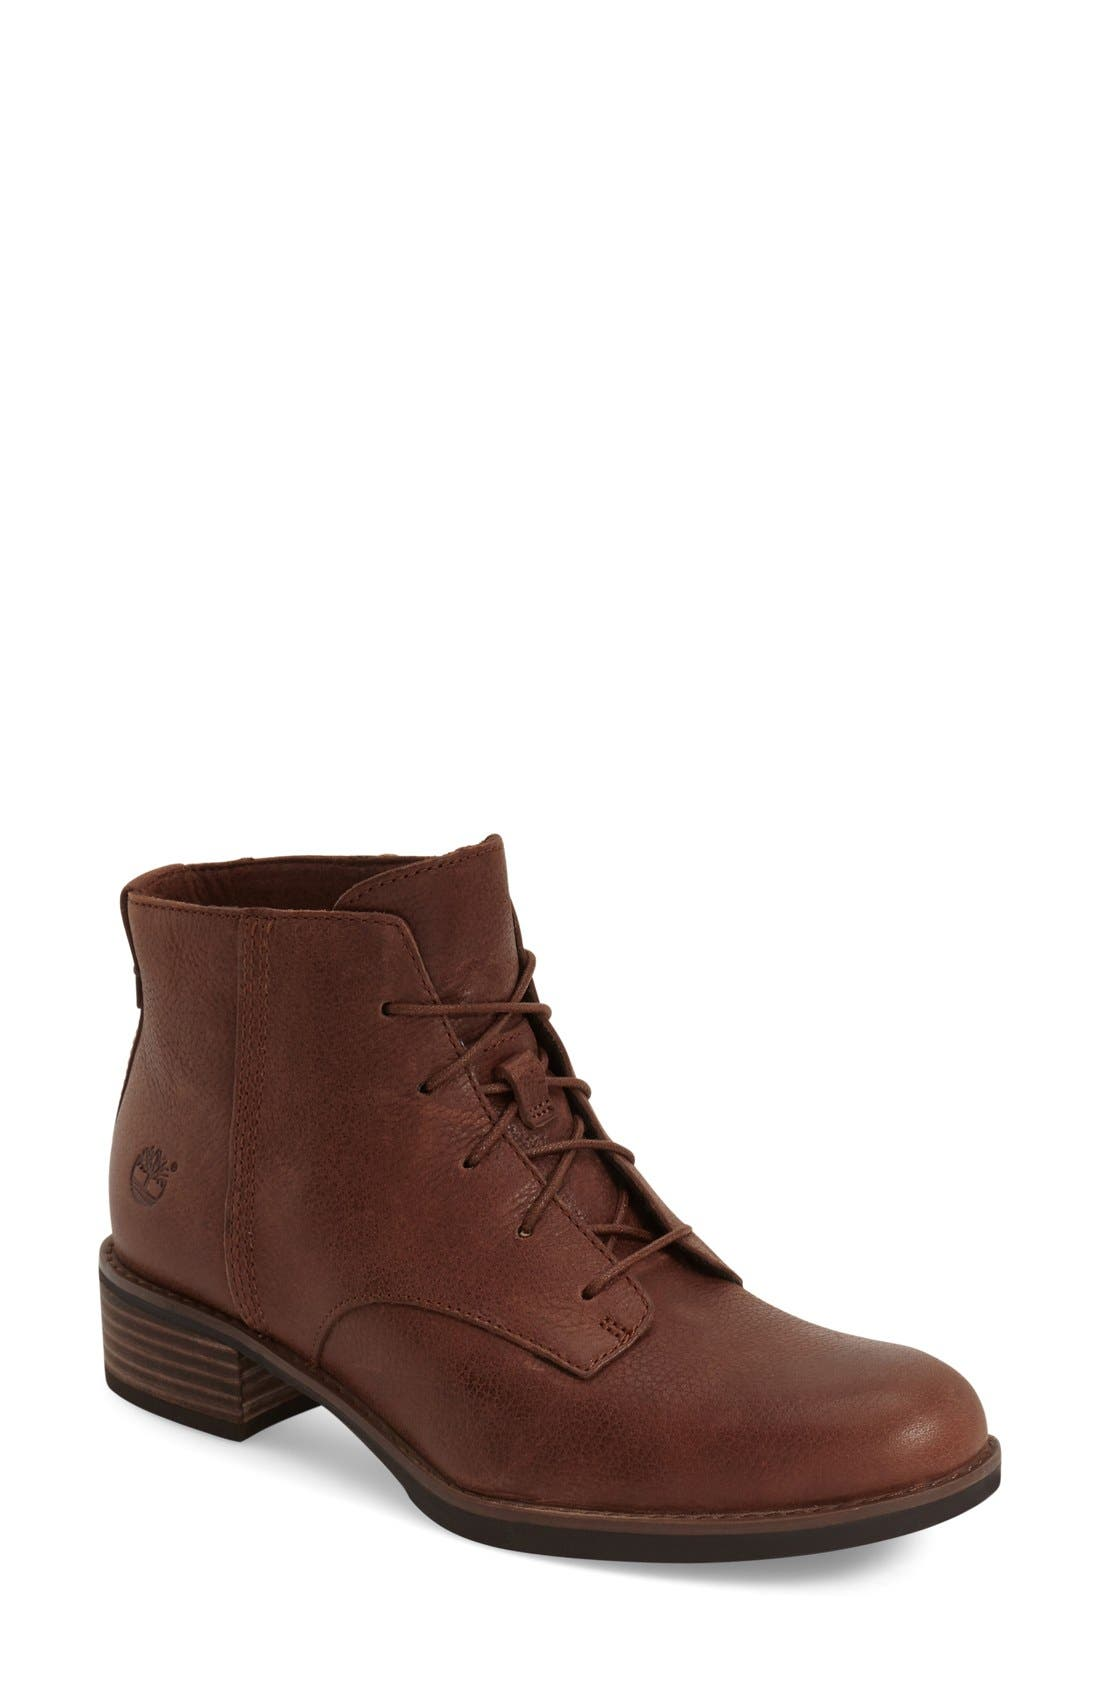 Alternate Image 1 Selected - Timberland 'Beckwith' Lace-Up Chukka Boot (Women)